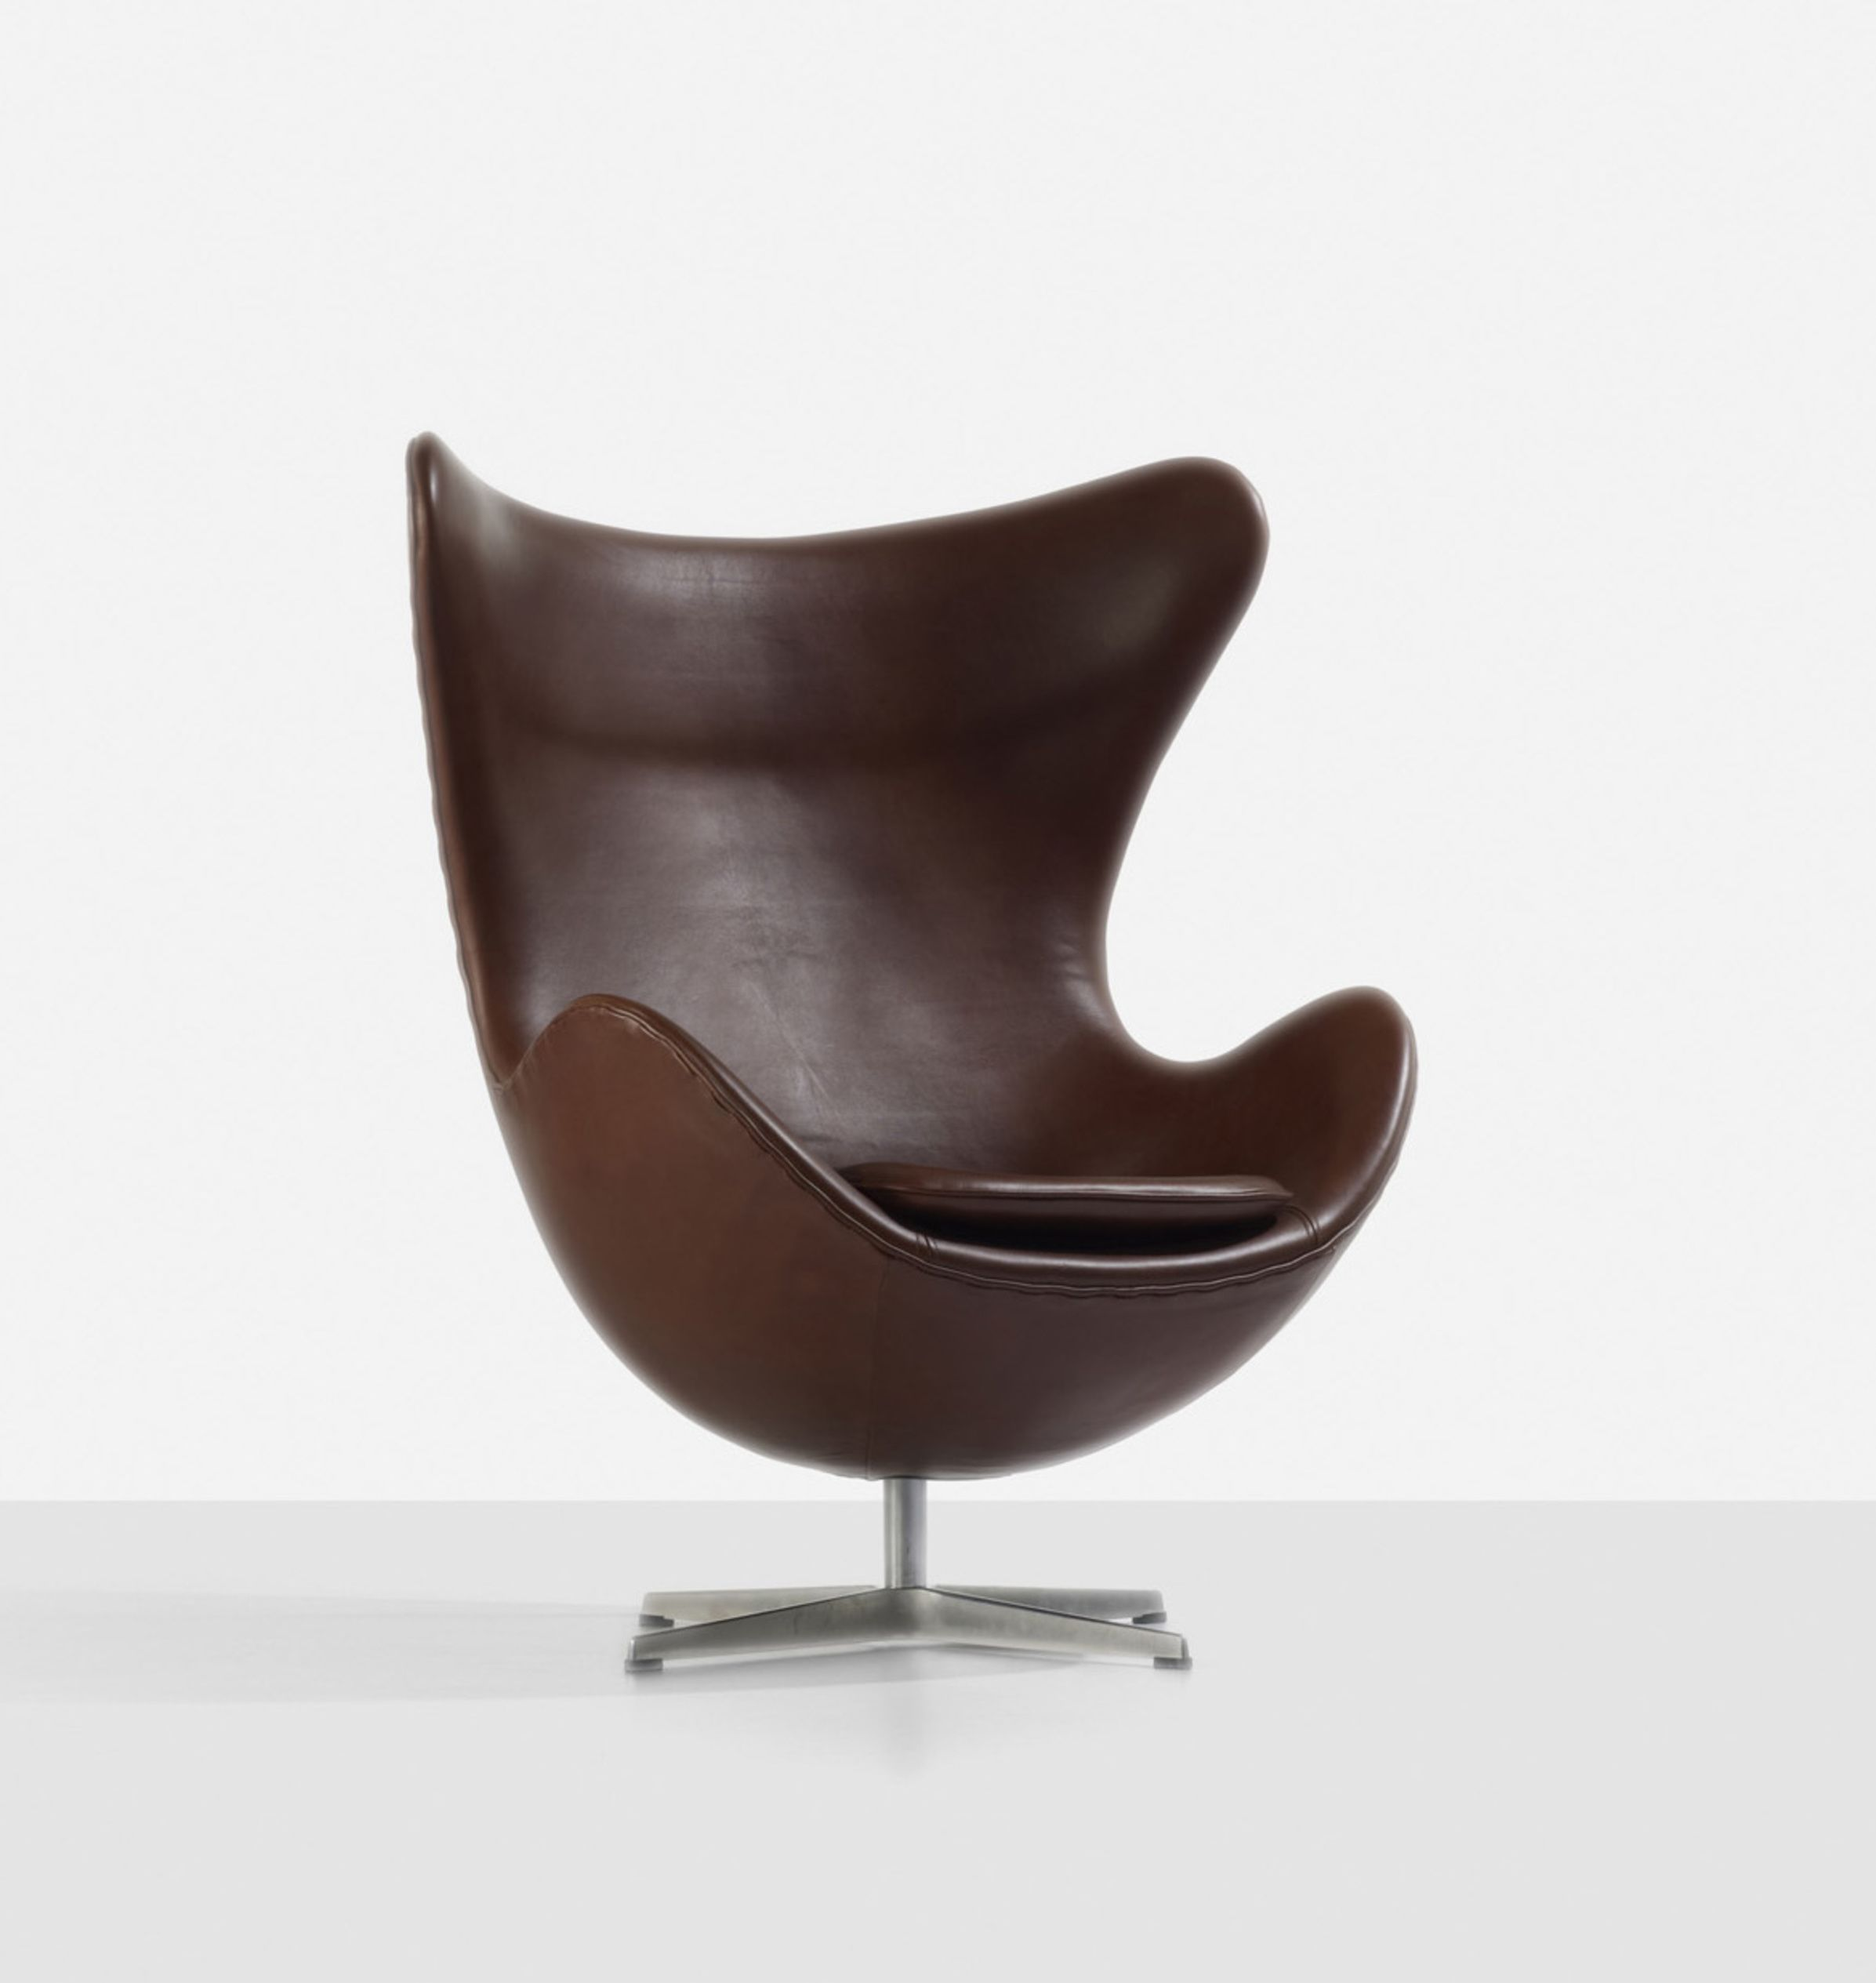 Arne Jacobsen Egg chair Outdoor chaise lounge chair